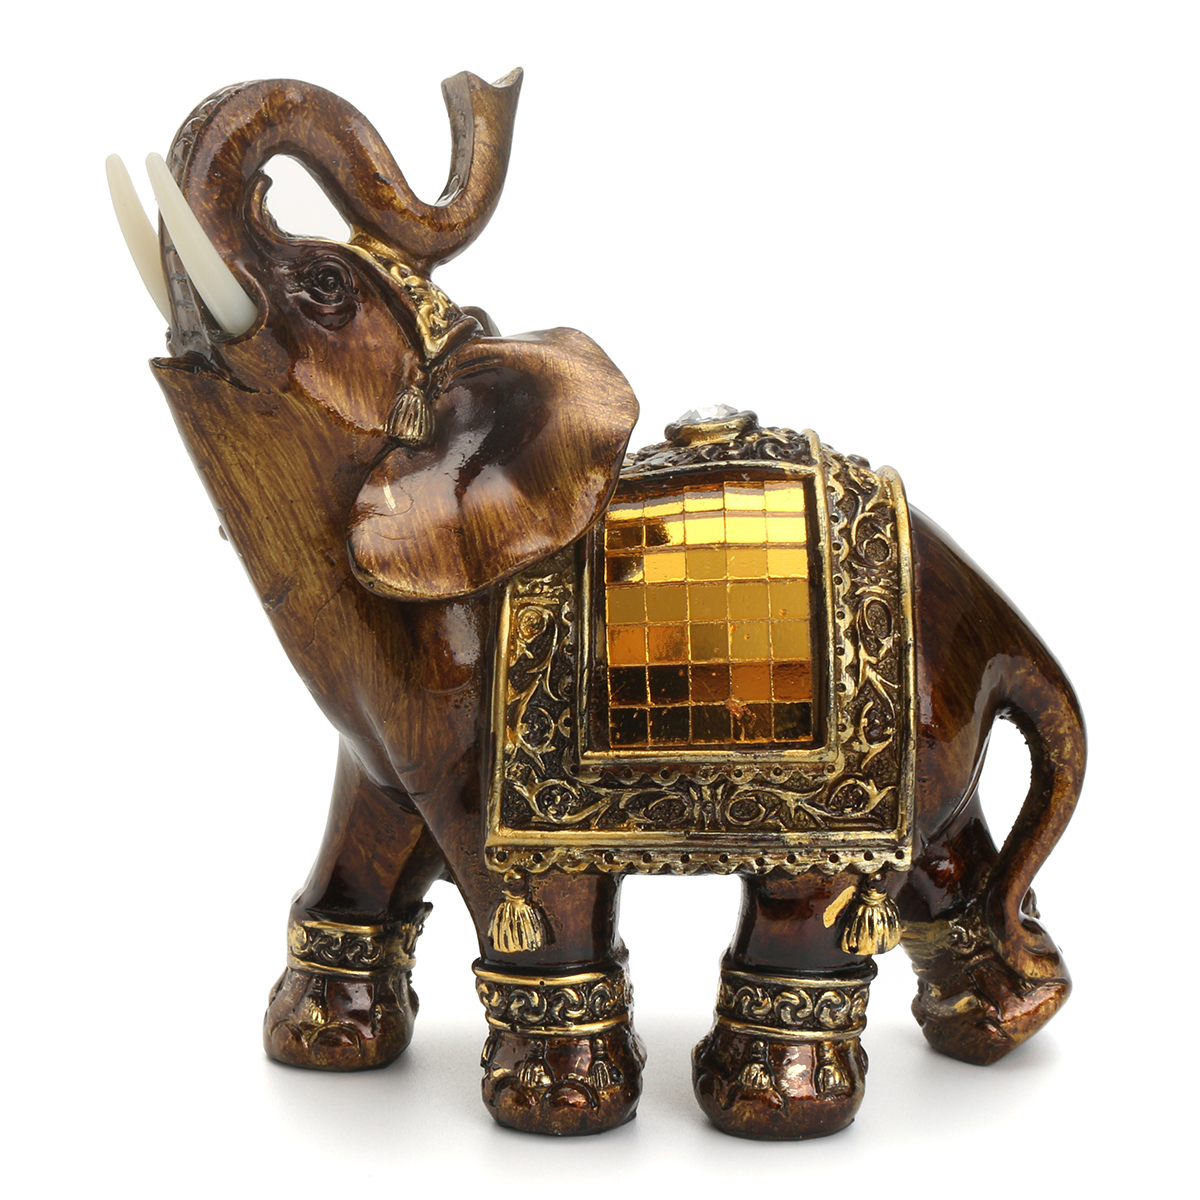 Resin Feng Shui Elegant Elephant Statue Lucky Wealth Figurine Home